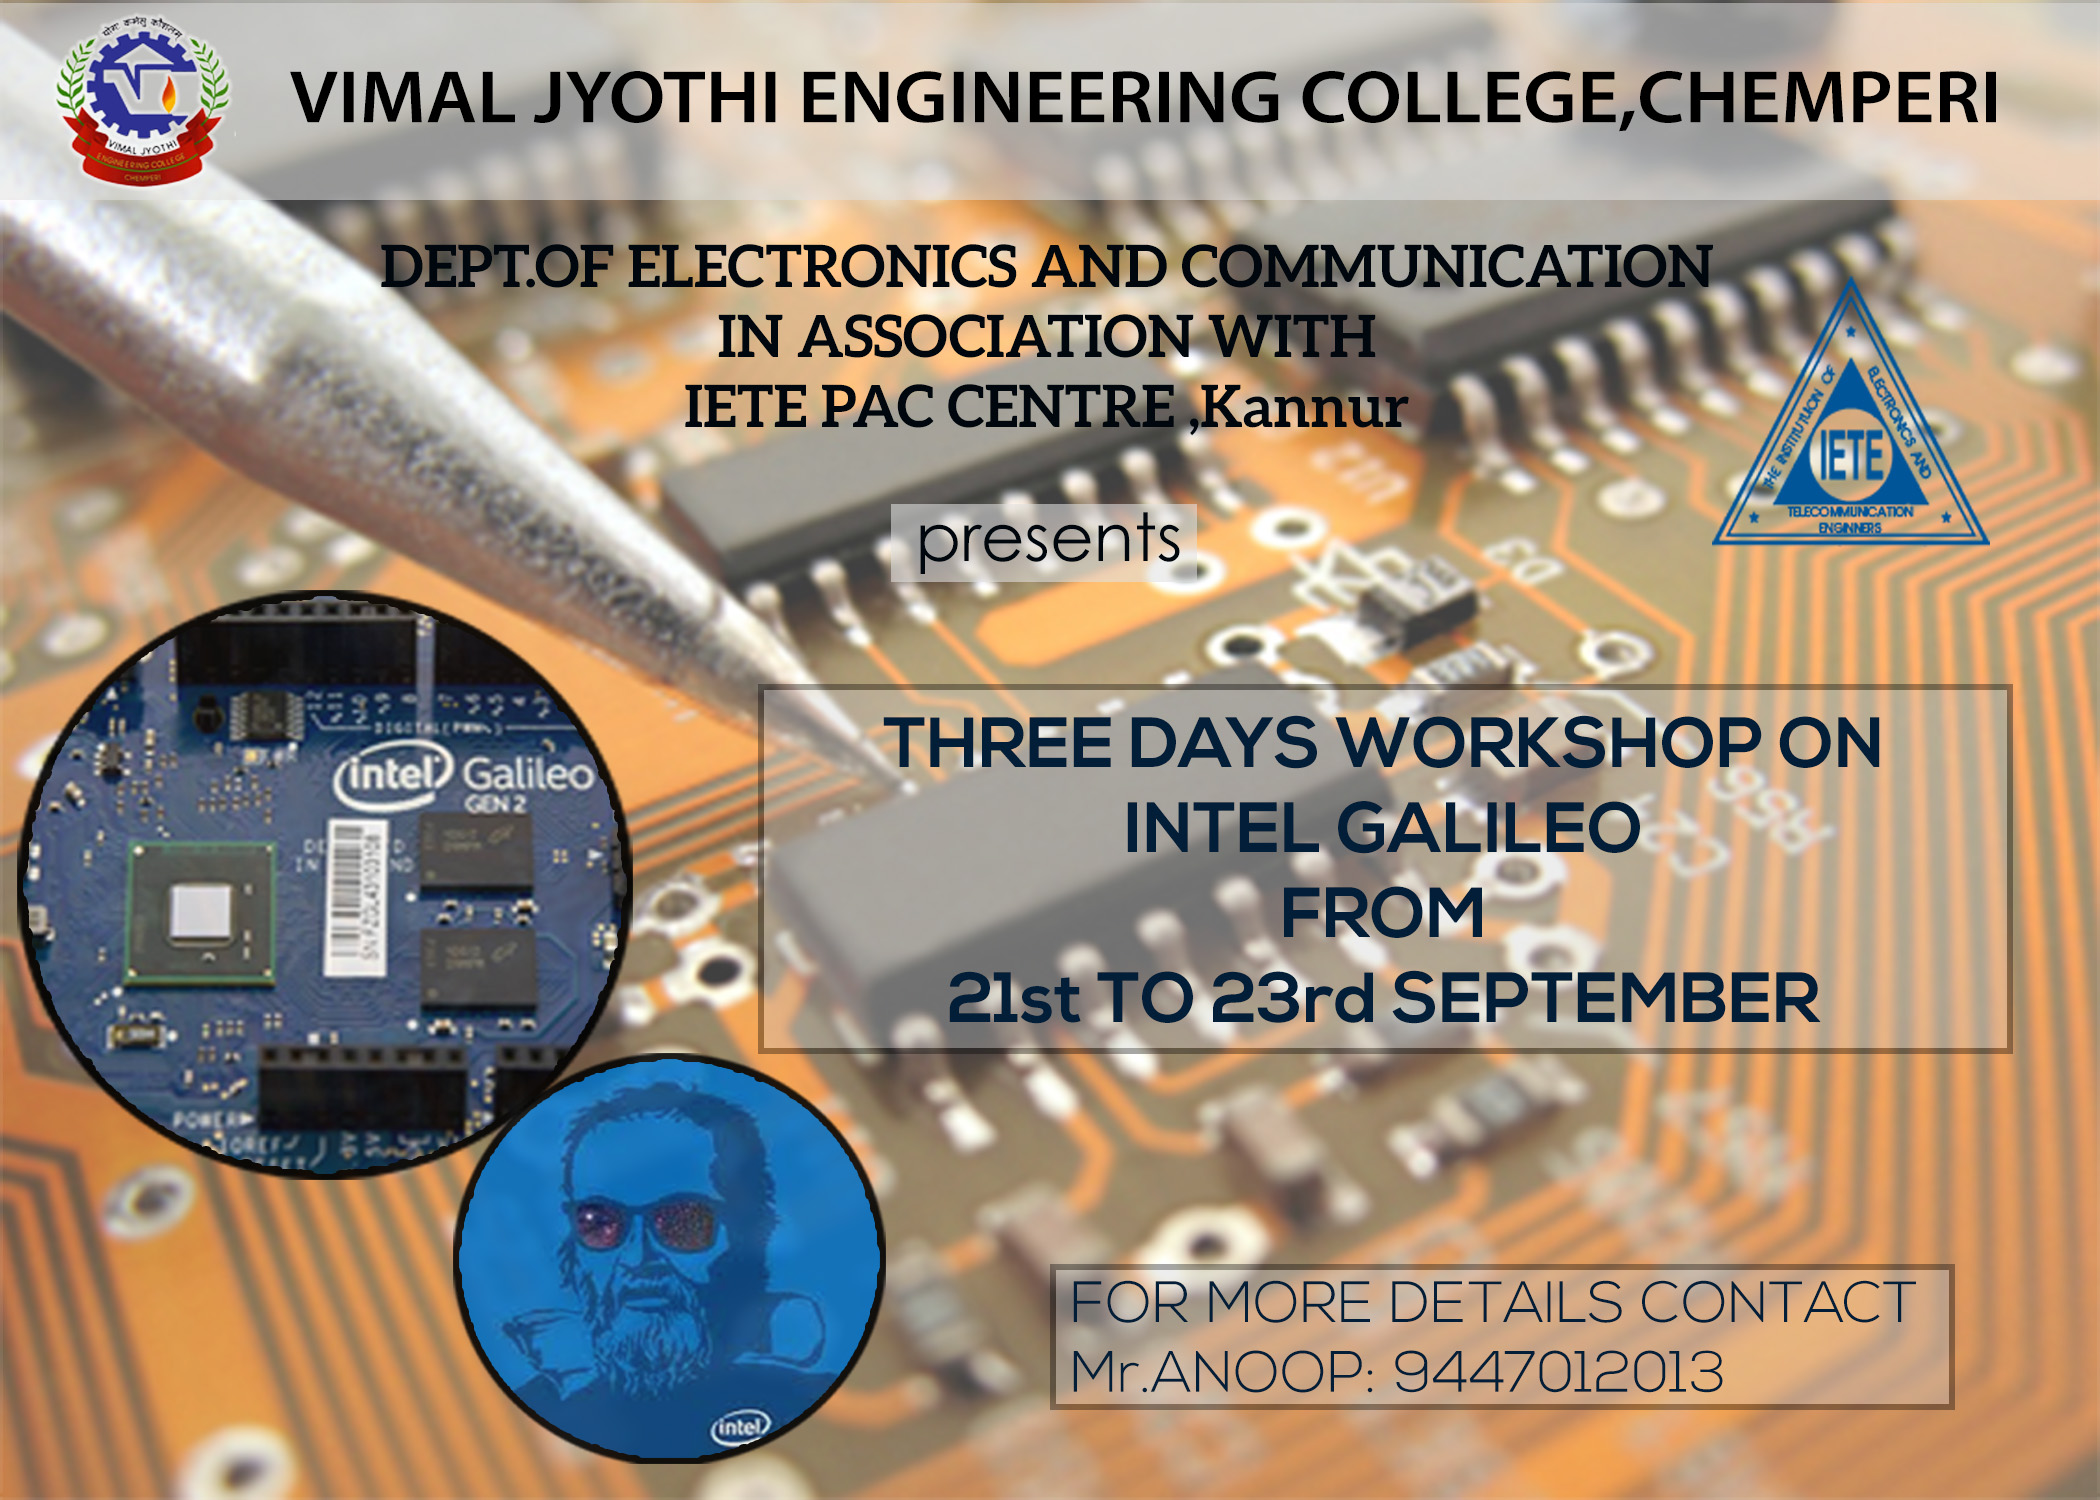 3 Days workshop on INTEL GALILEO